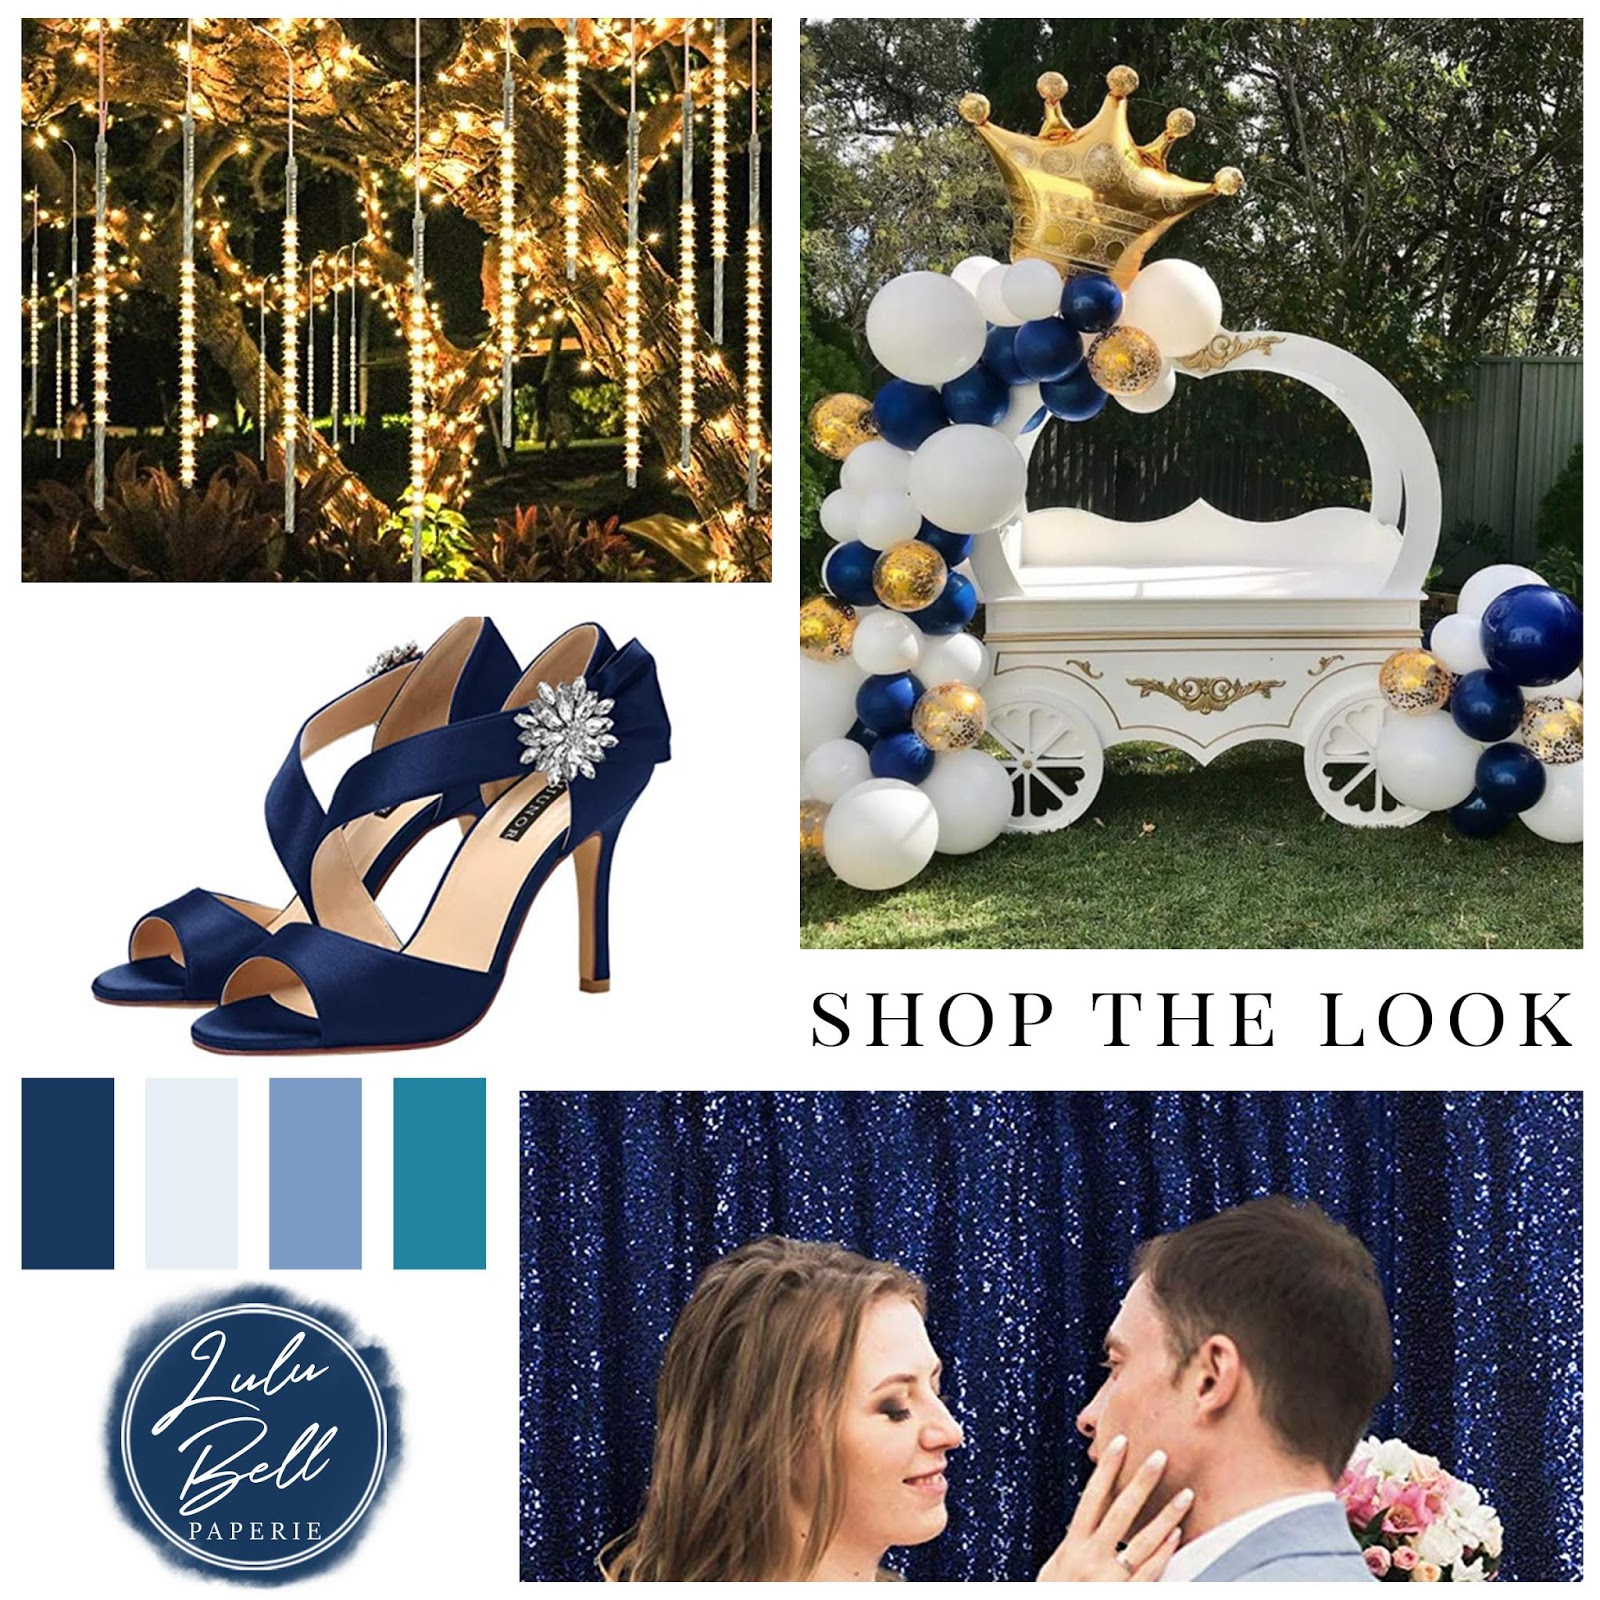 Shop the Look | Enchanted Forest Wedding | Hanging Fairy String Lights, Navy Blue Jeweled Bridal Shoes, Balloon Garland, and Sparkling Photo Booth backdrop